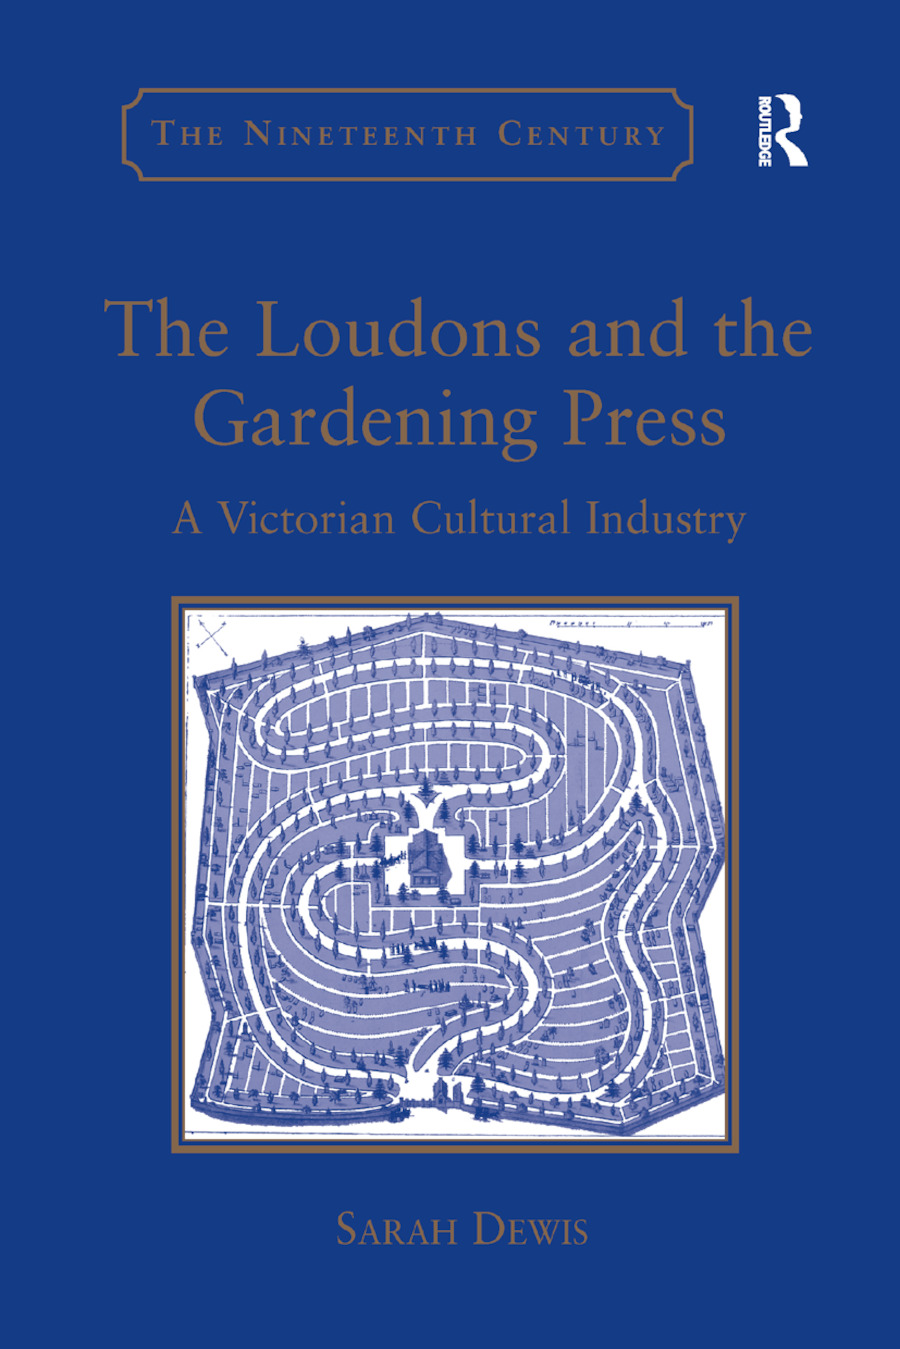 The Loudons and the Gardening Press: A Victorian Cultural Industry book cover